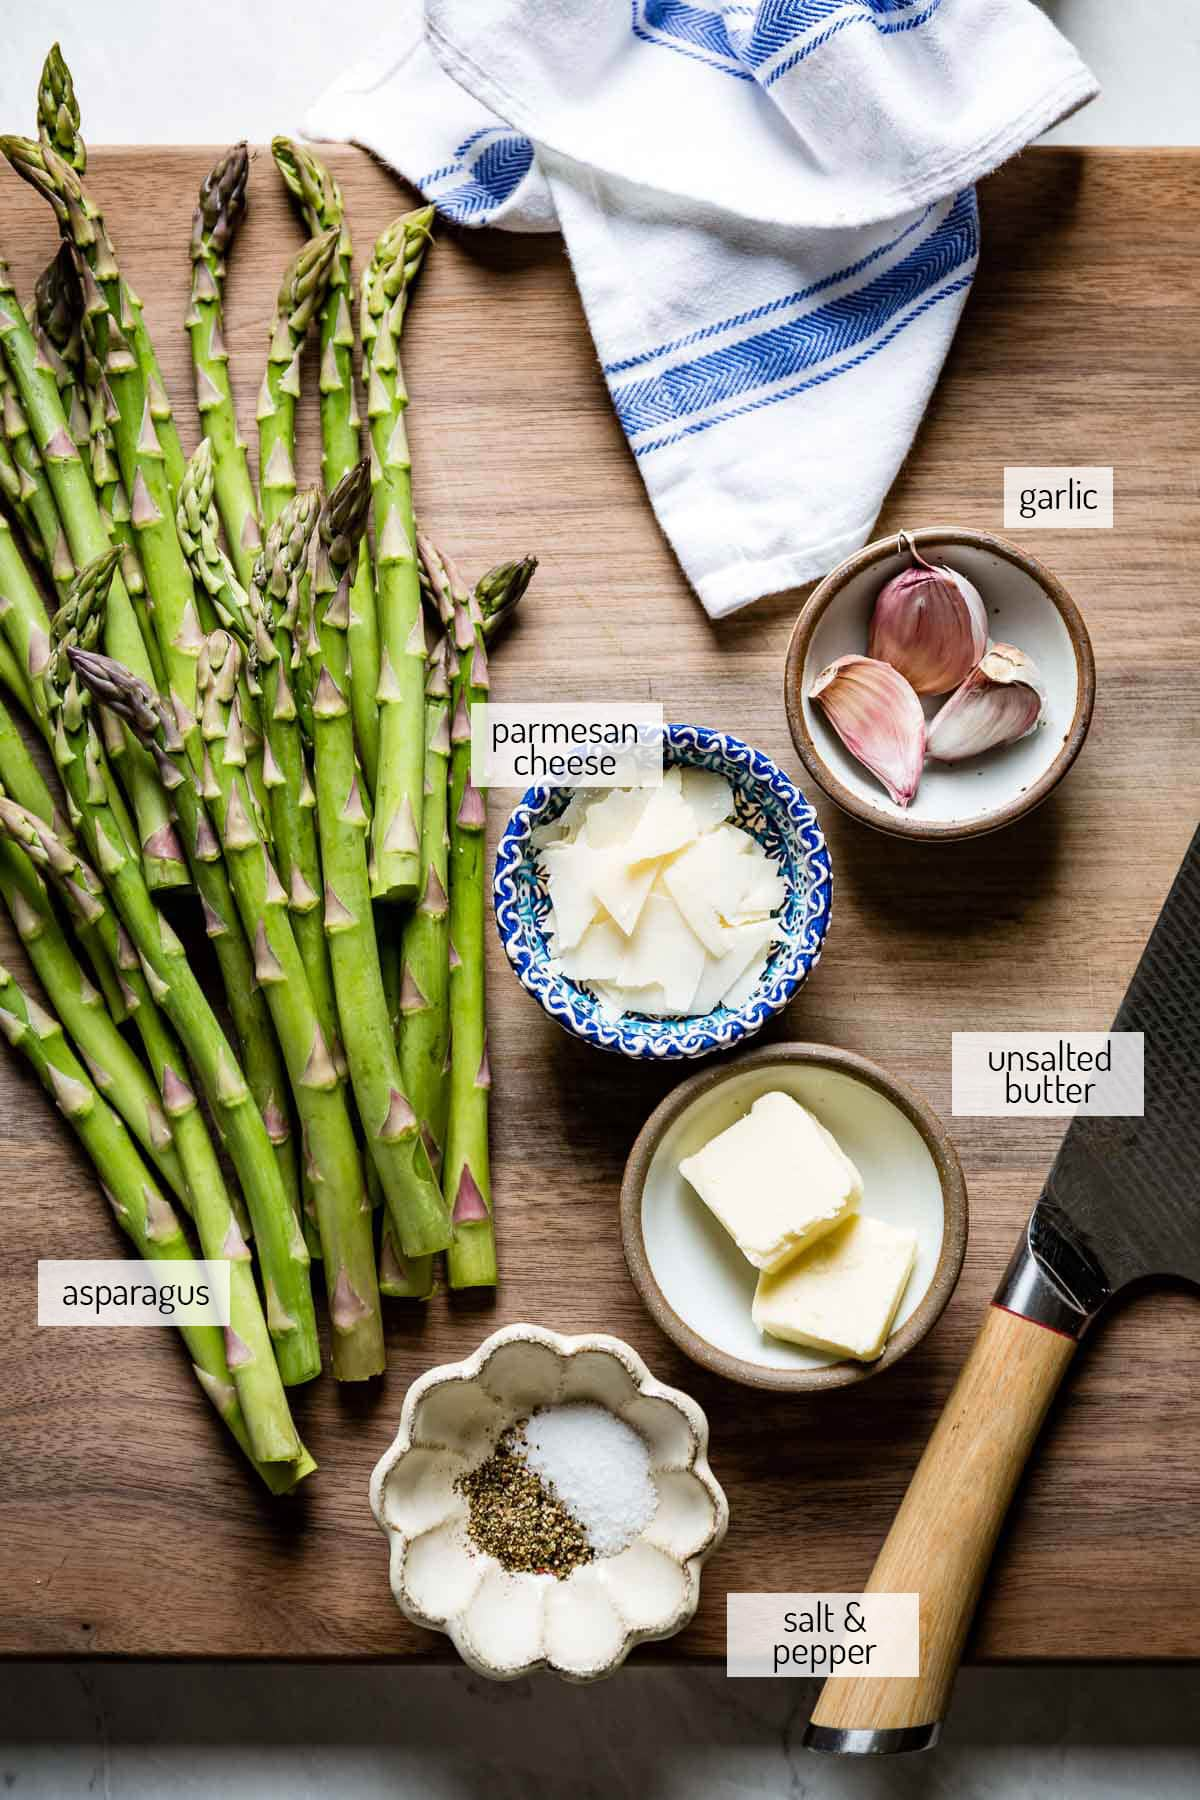 Ingredients to make the recipe on a cutting board